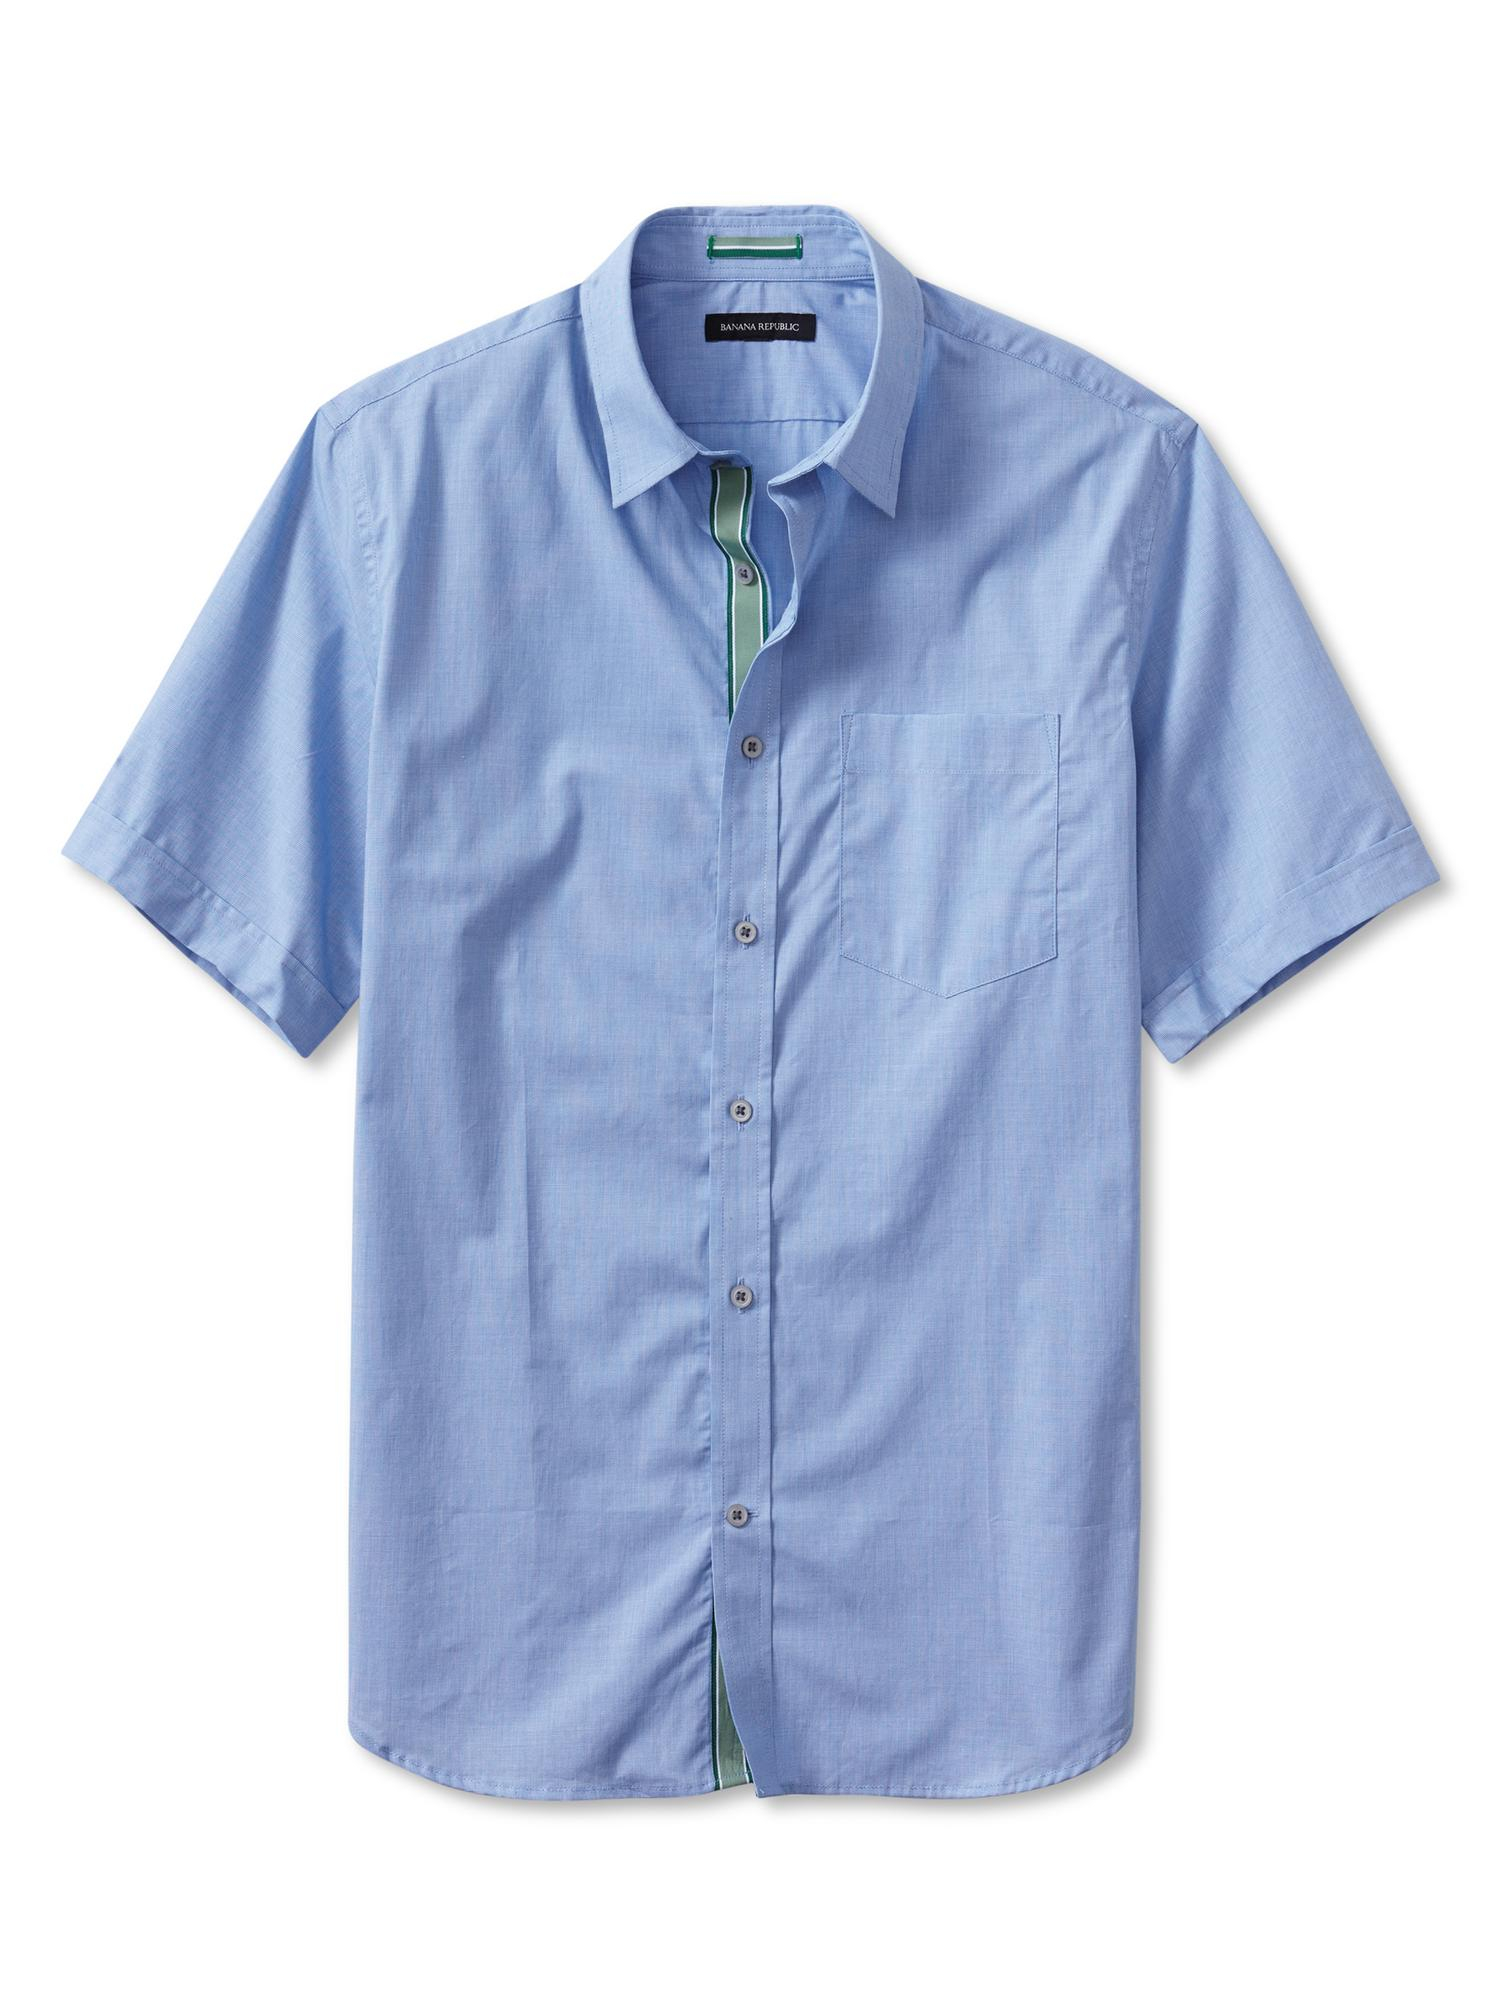 Banana Republic Tailored Slim Fit Button Down Short Sleeve